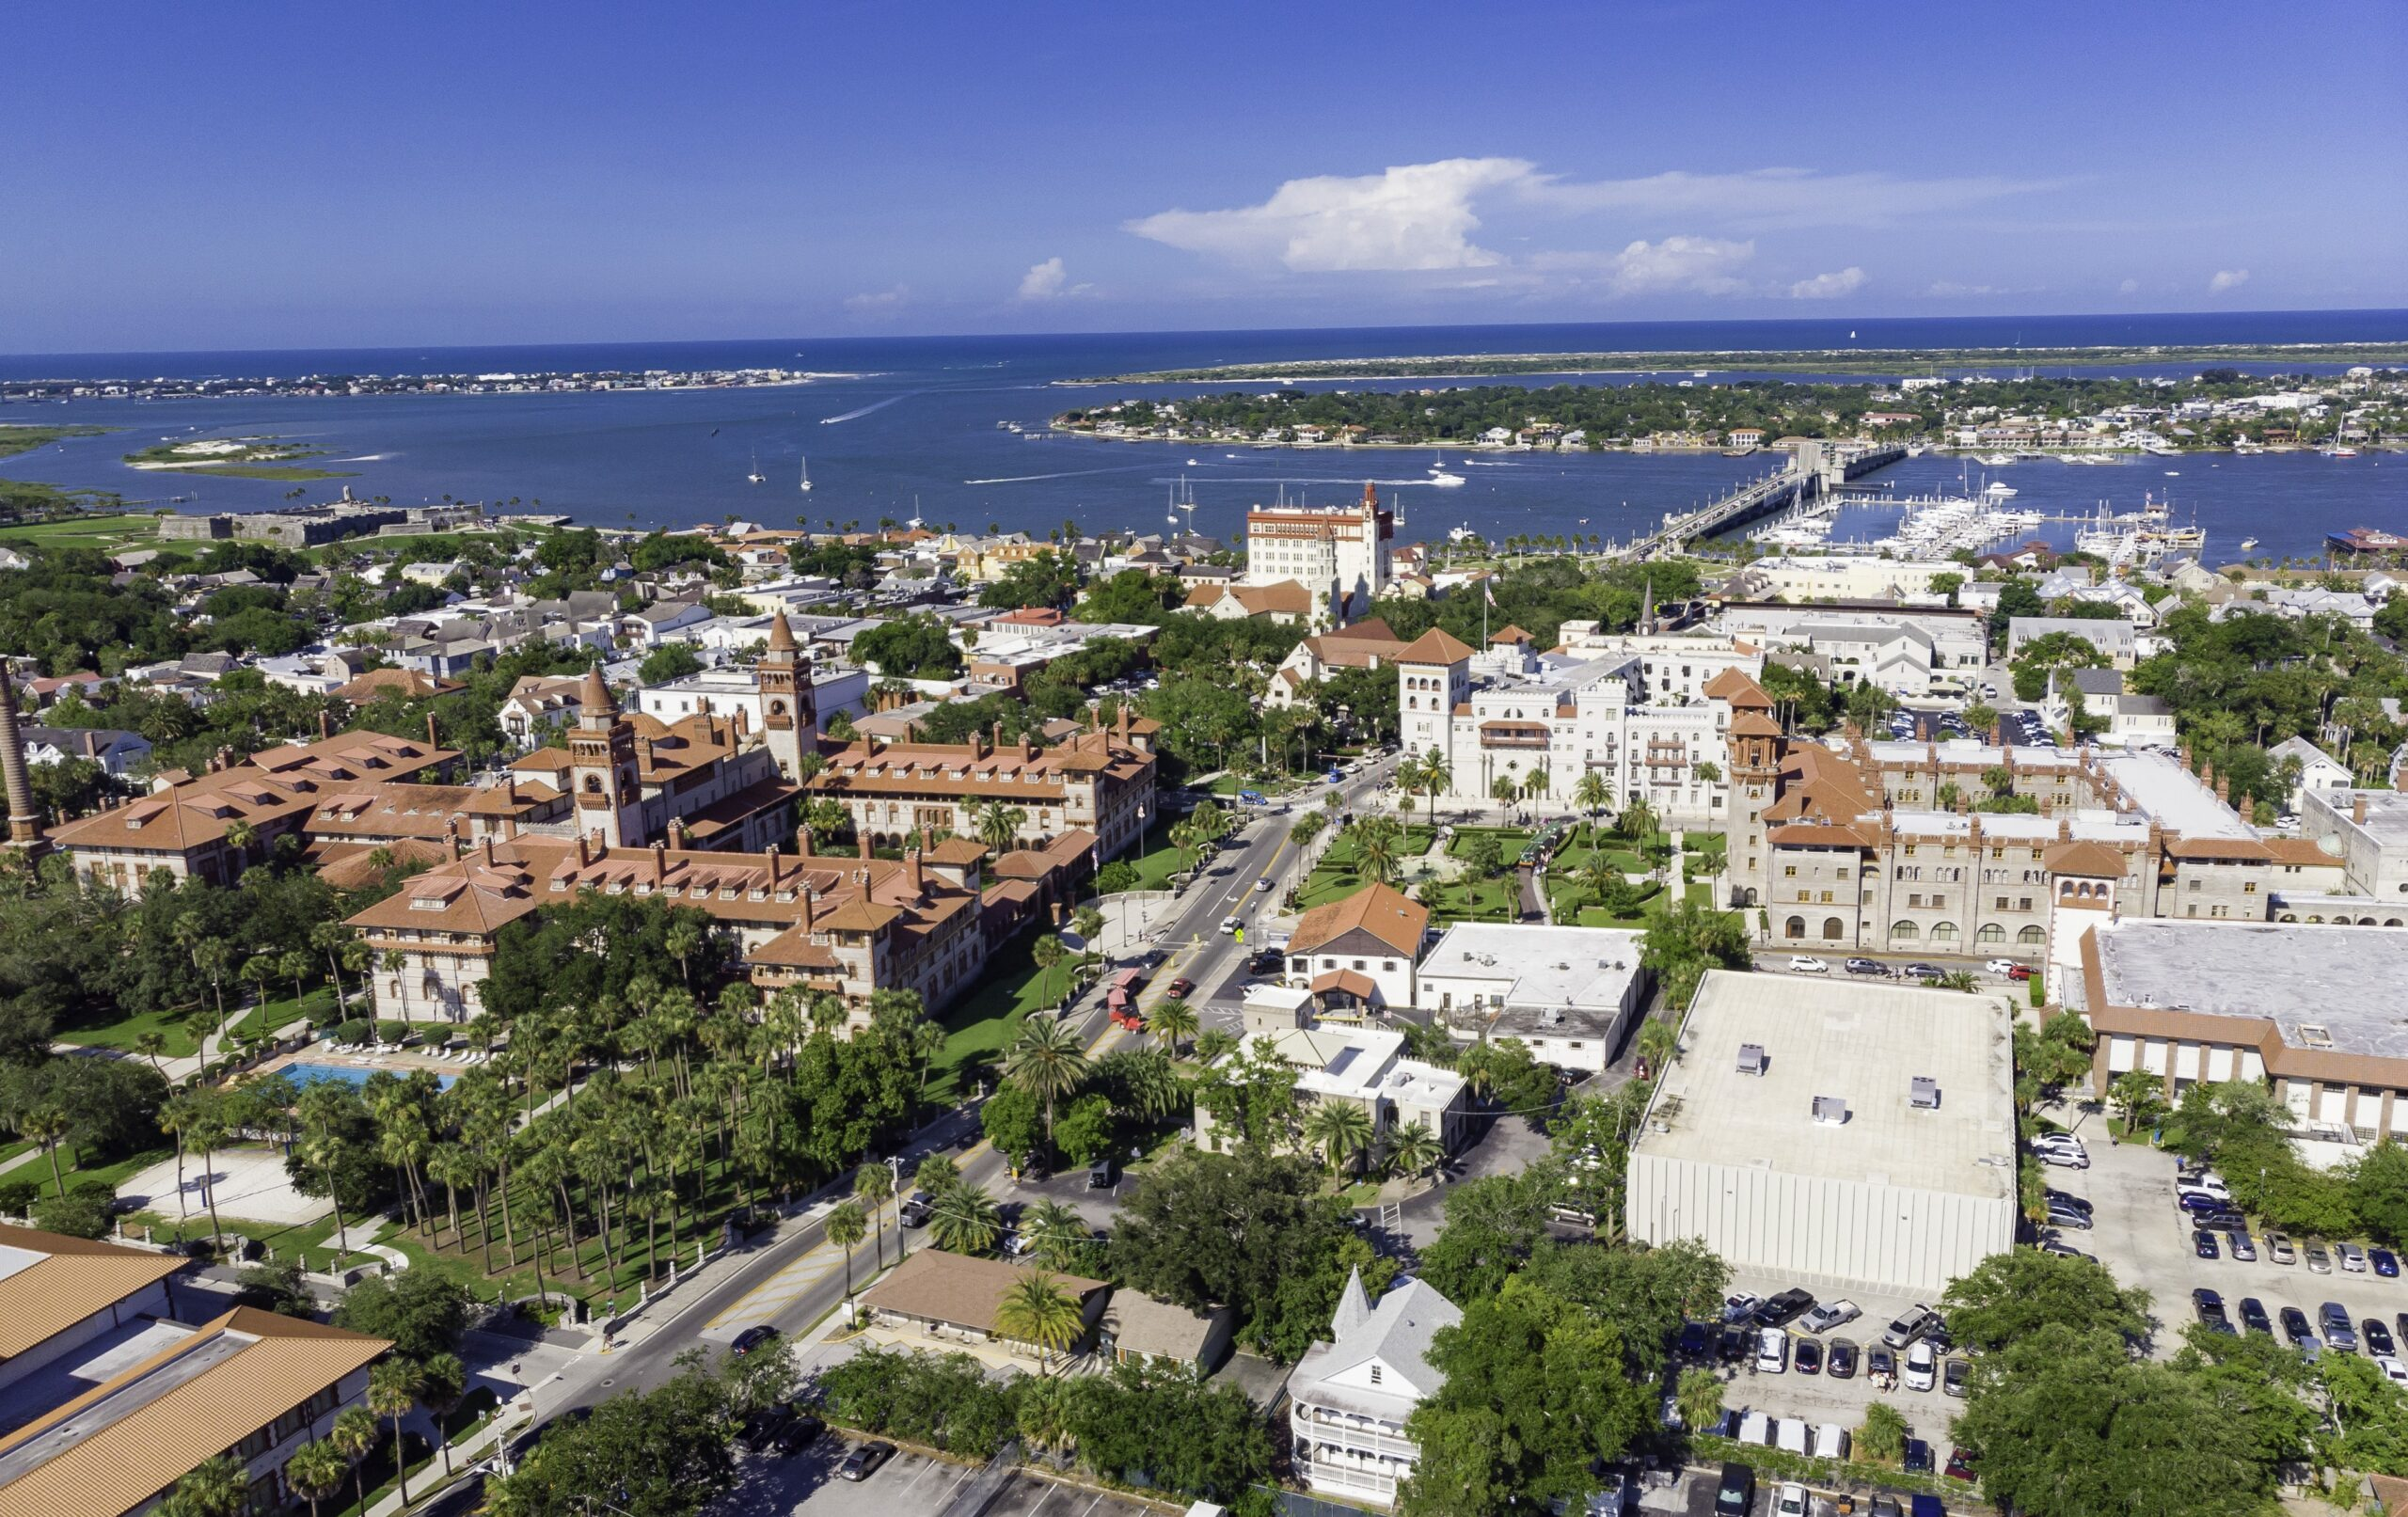 Top St Augustine Tours, Tickets & Activities